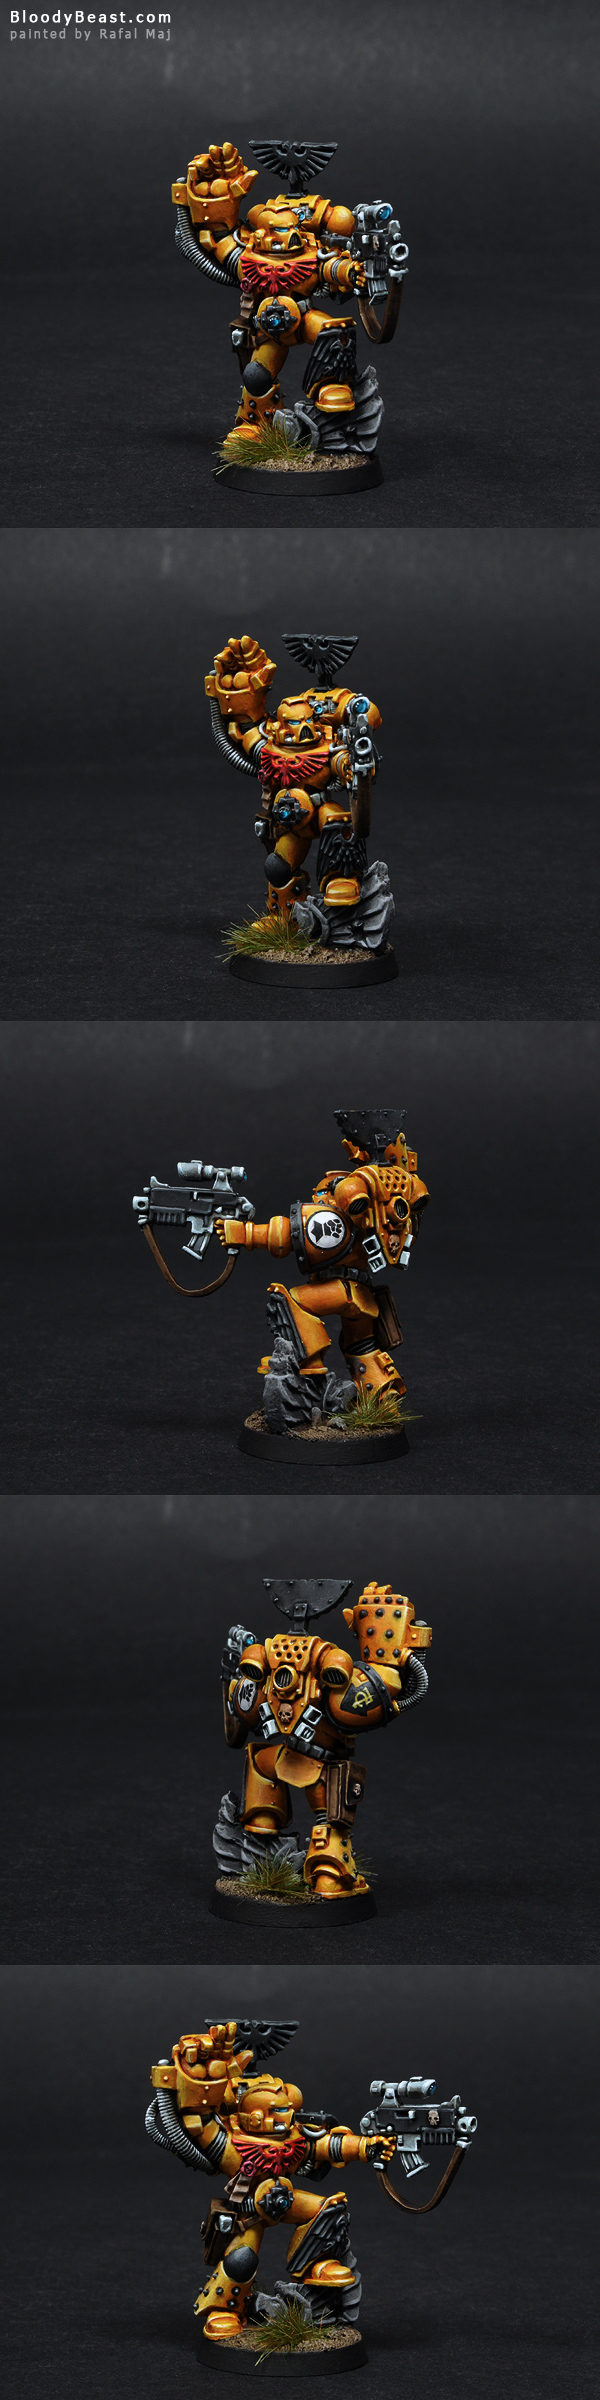 Imperial Fists Sergeant painted by Rafal Maj (BloodyBeast.com)